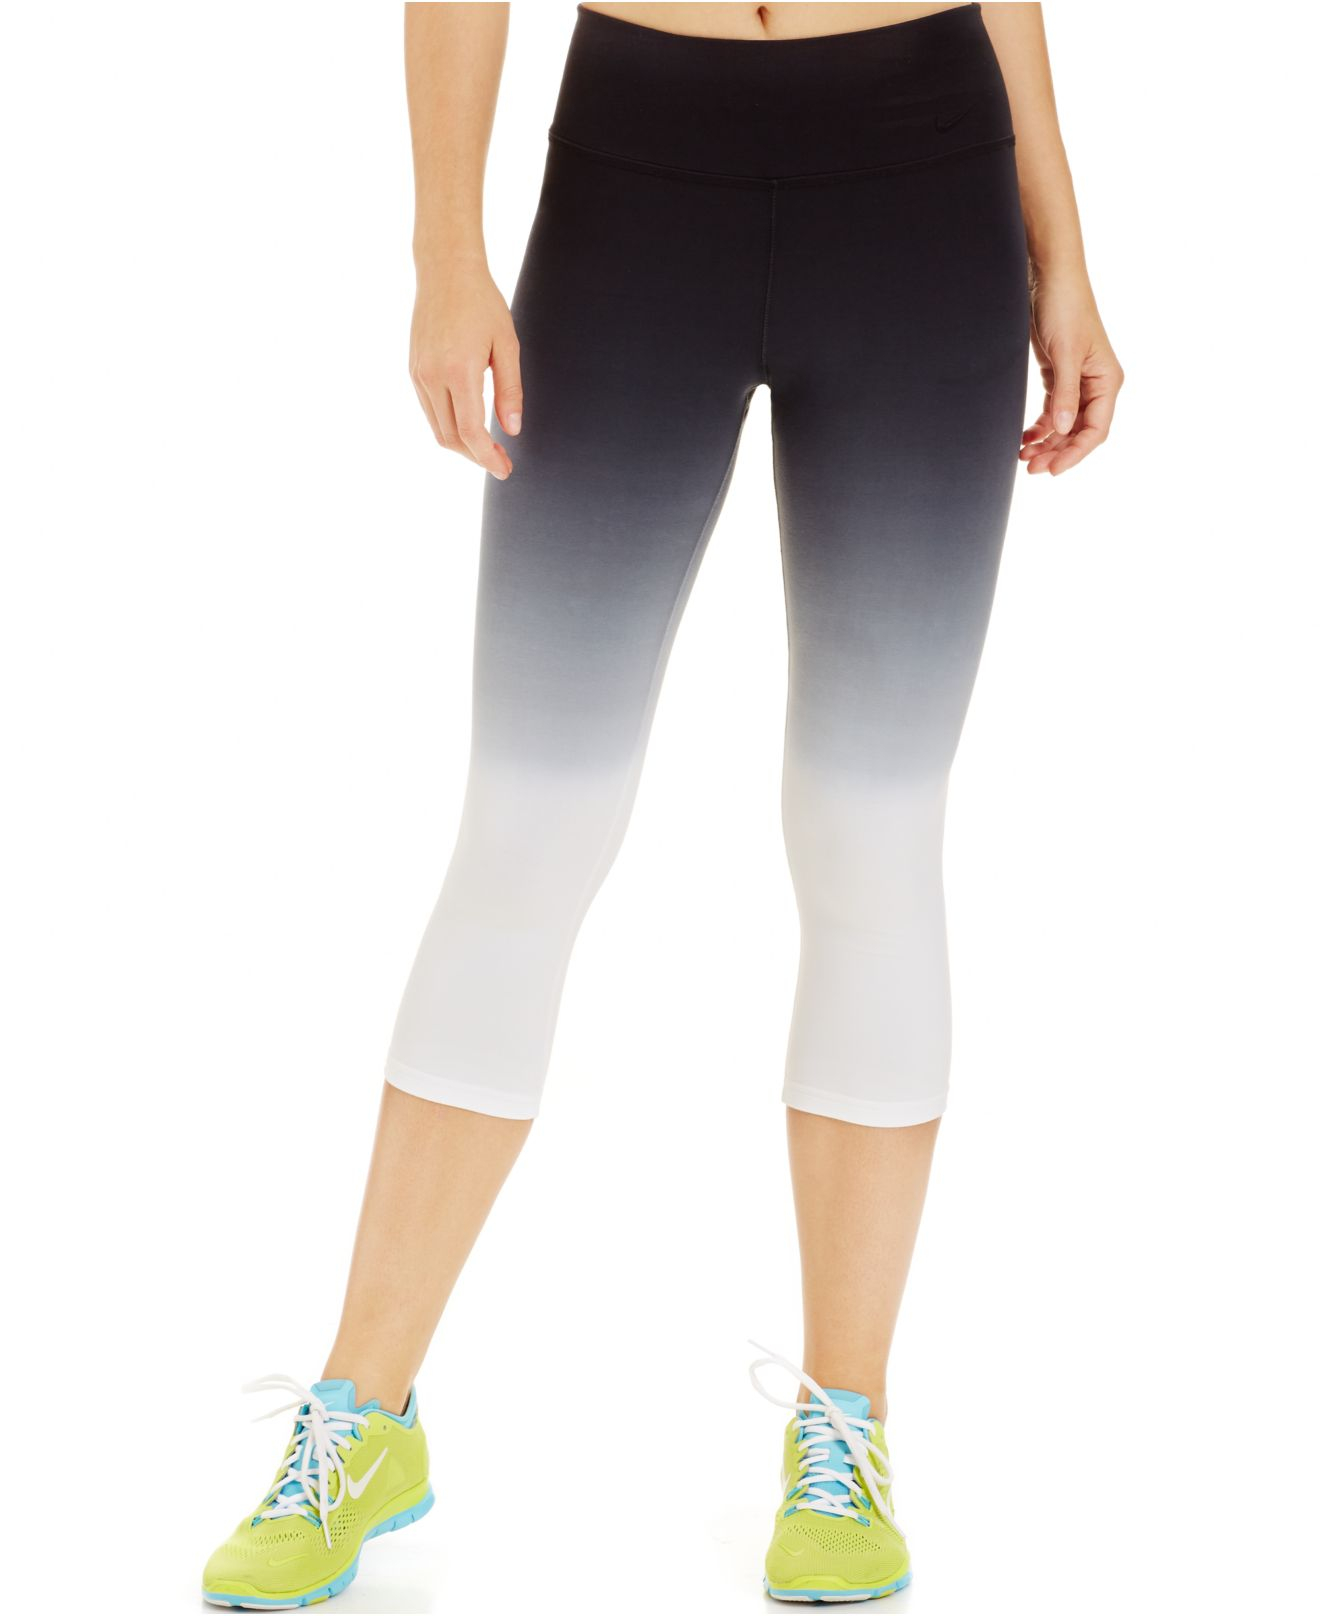 41e62126846eb Nike Legend Sunset Dri-fit Ombre Capri Leggings in Black - Lyst